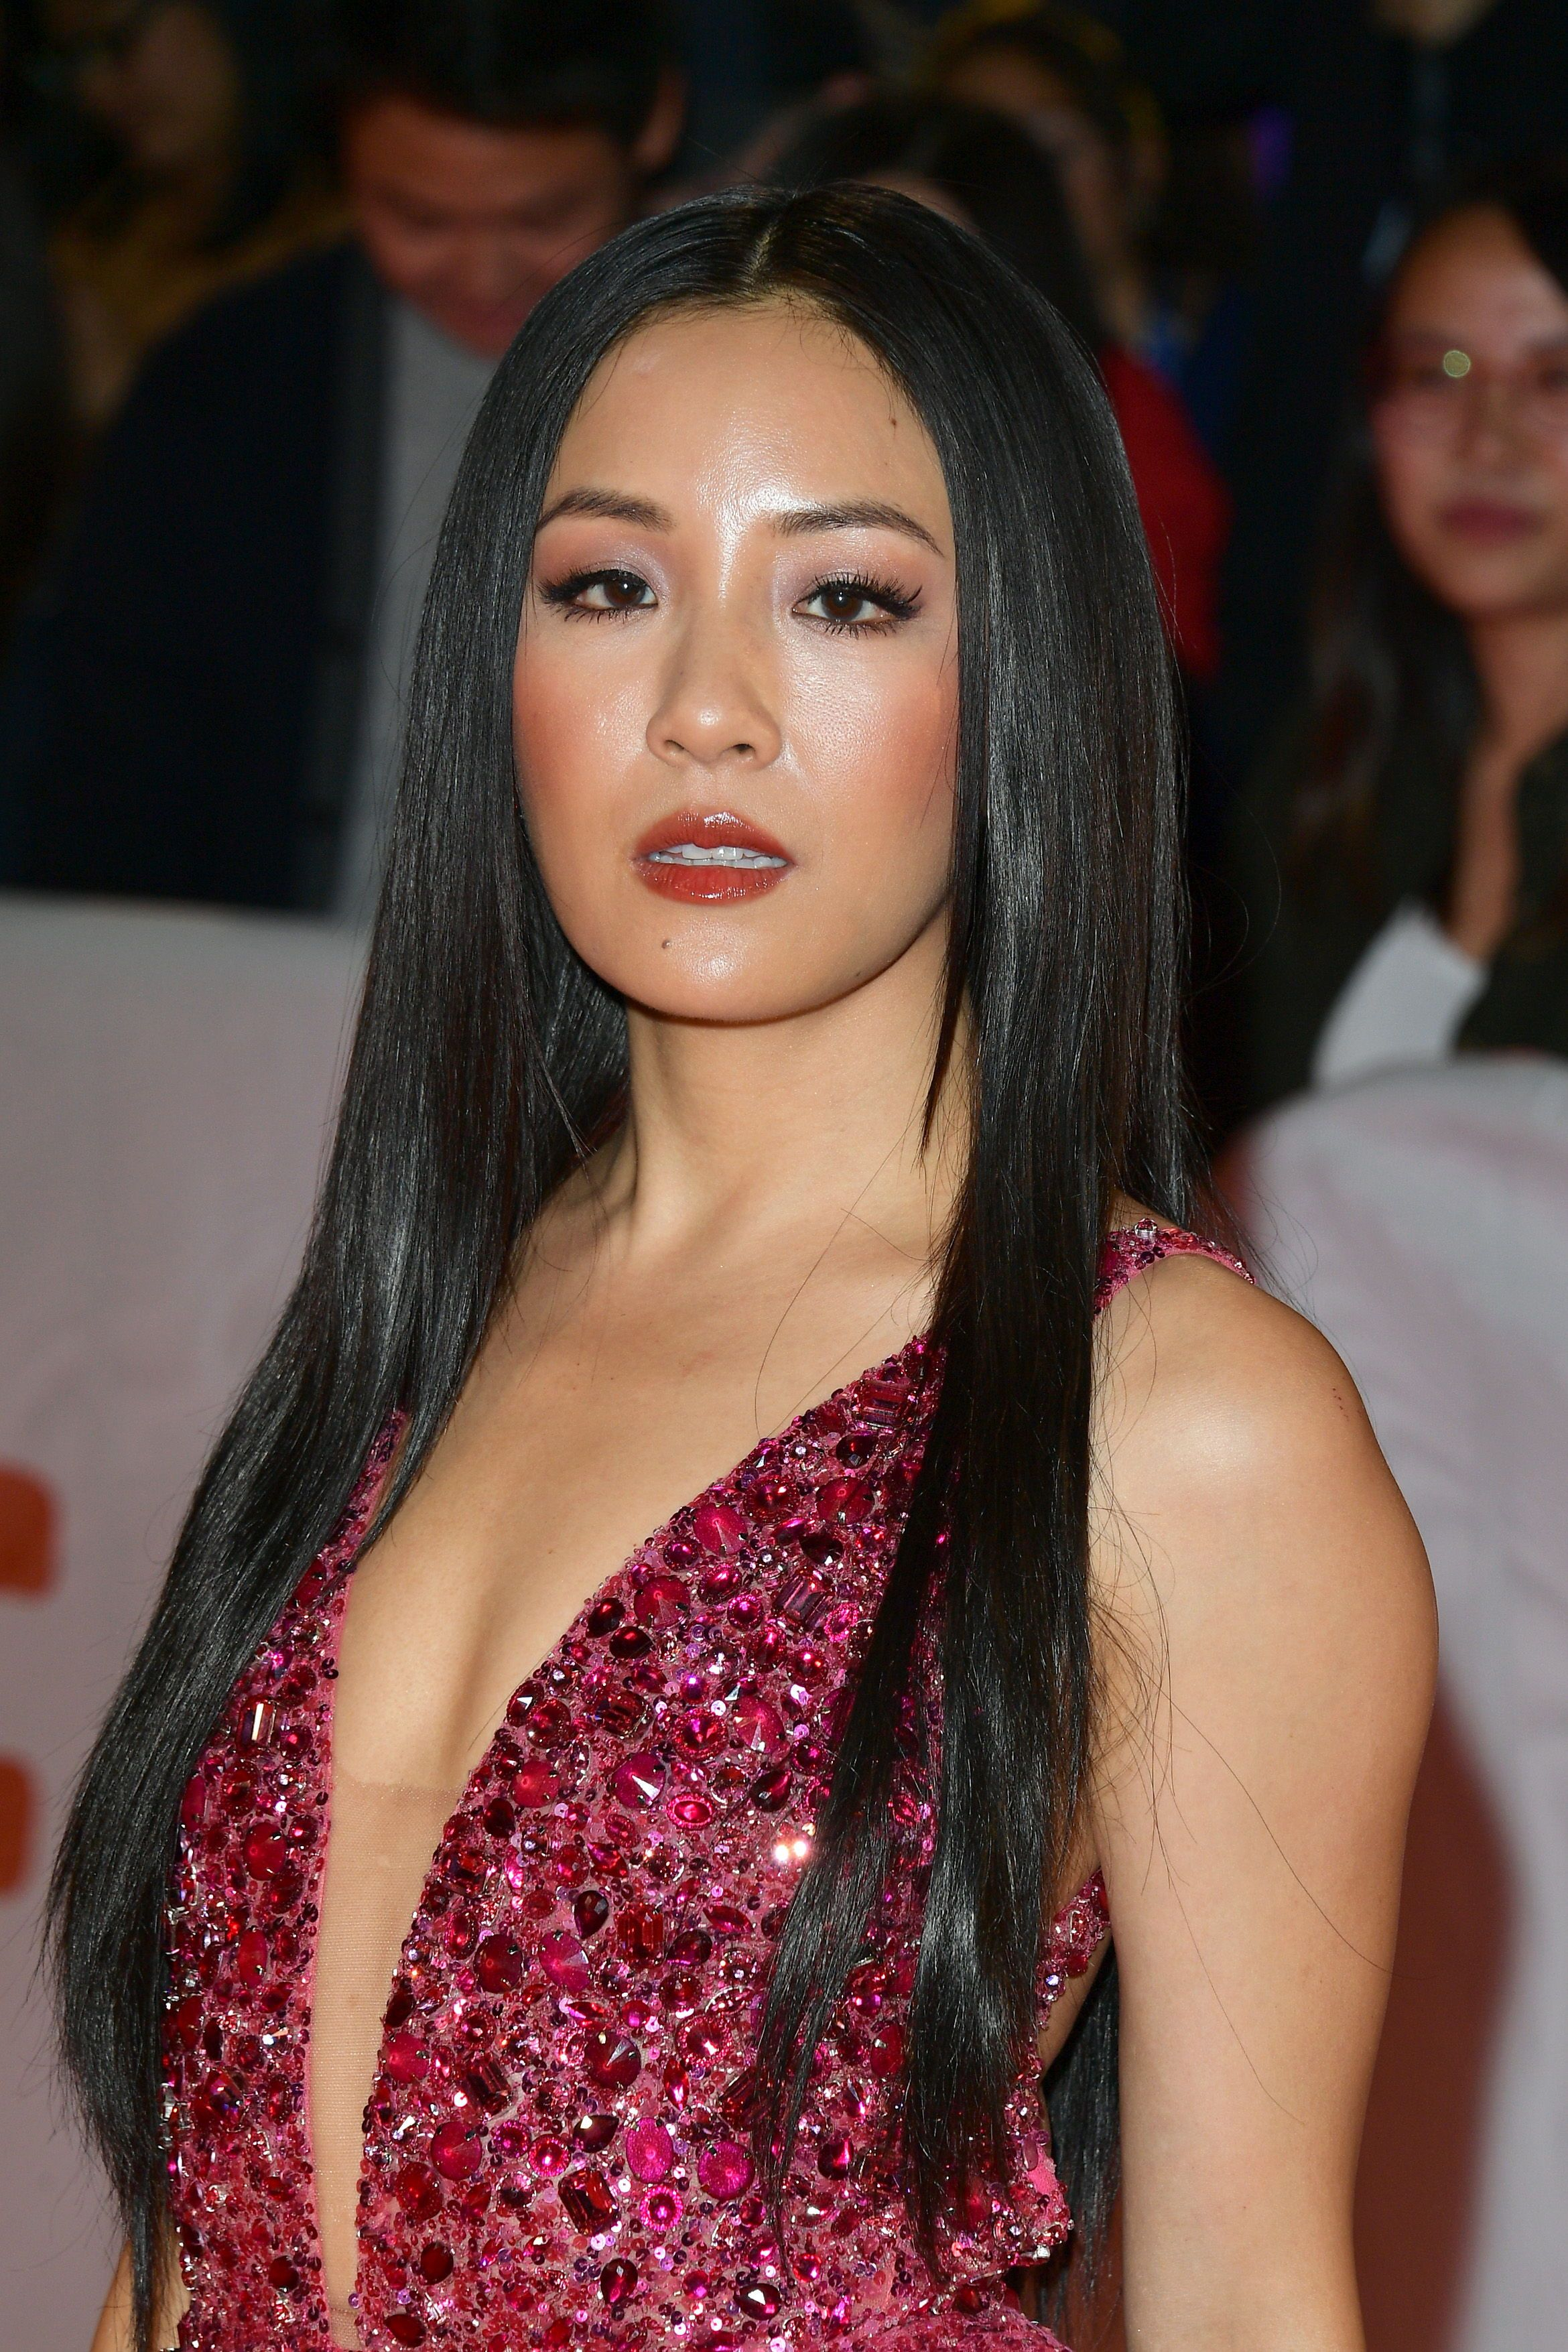 AsAm News | Constance Wu Earned $600 While Stripping in